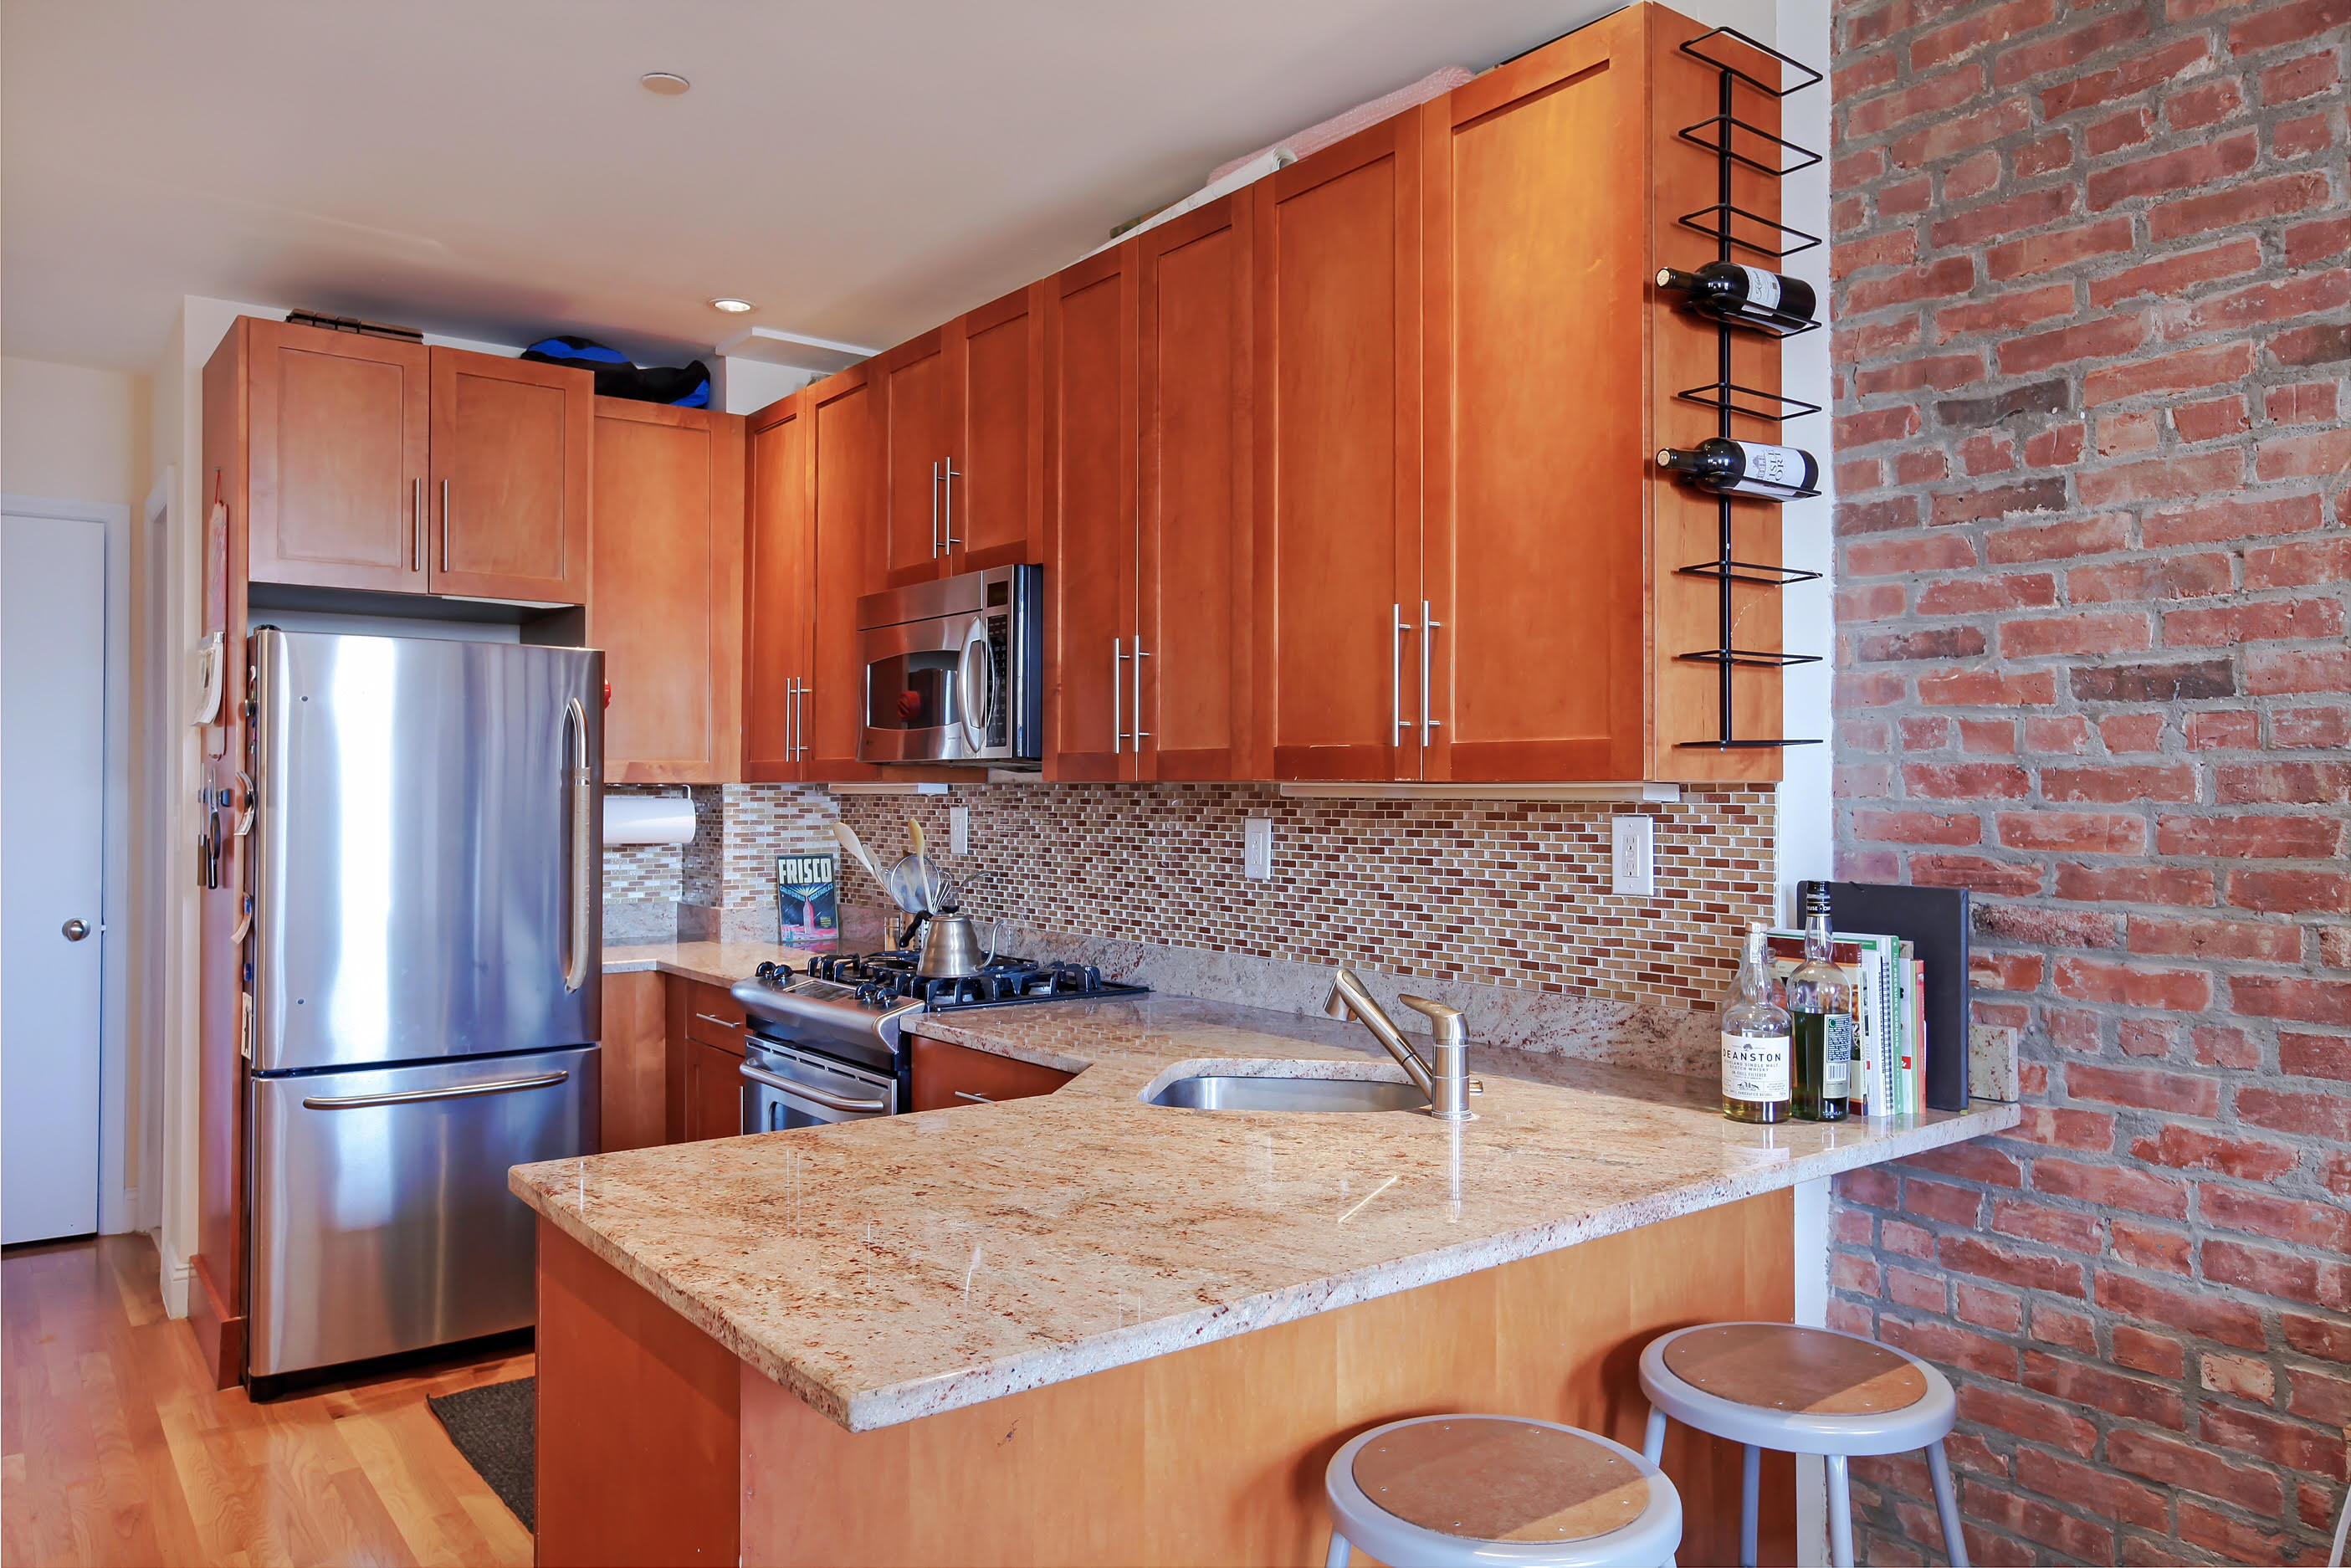 252 West 123rd Street, harlem, open kitchen